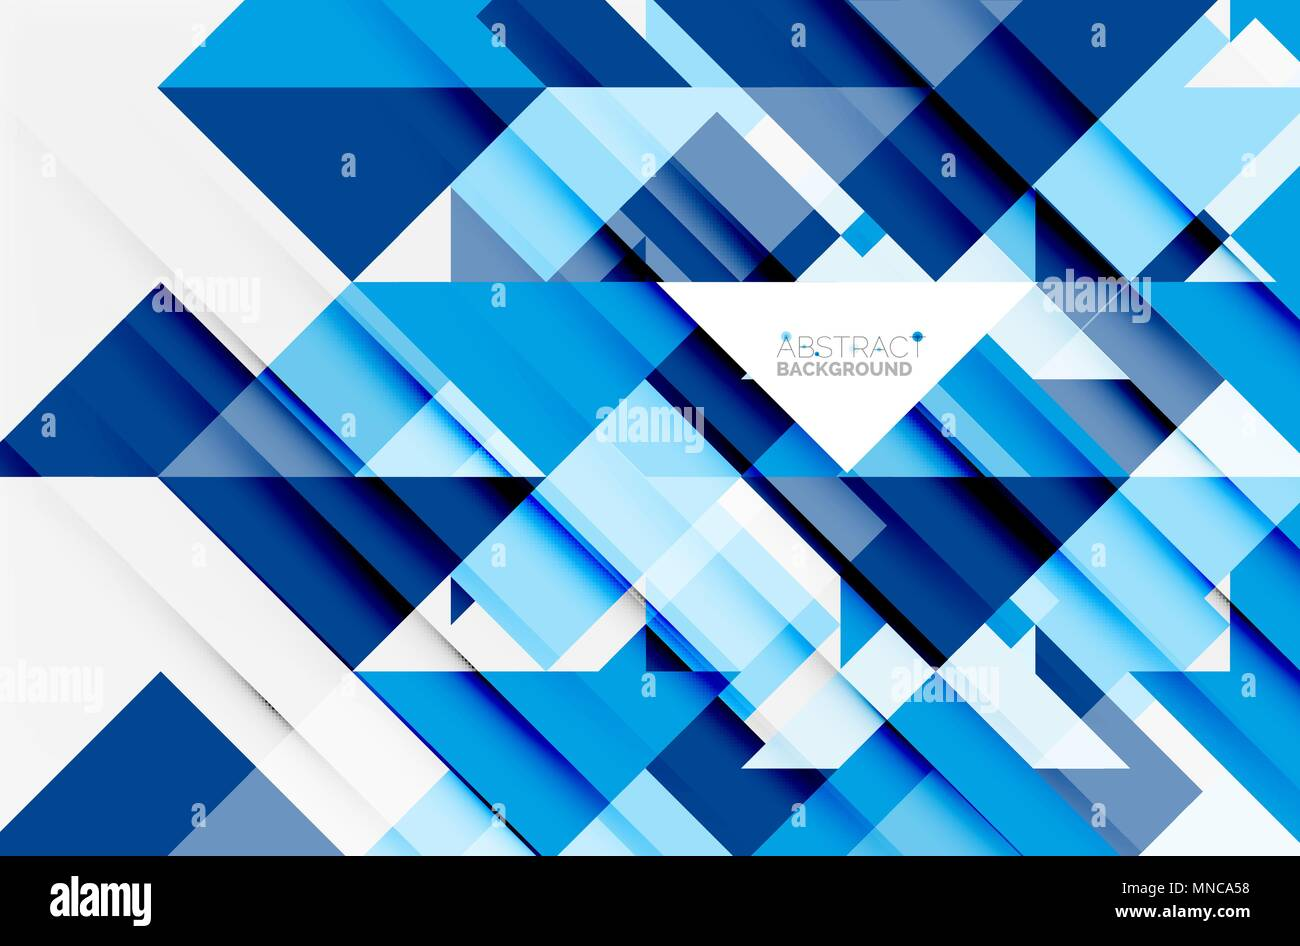 Triangle pattern design background triangle pattern design triangle pattern design background triangle pattern design background vector business or technology presentation template brochure or flyer pattern accmission Image collections